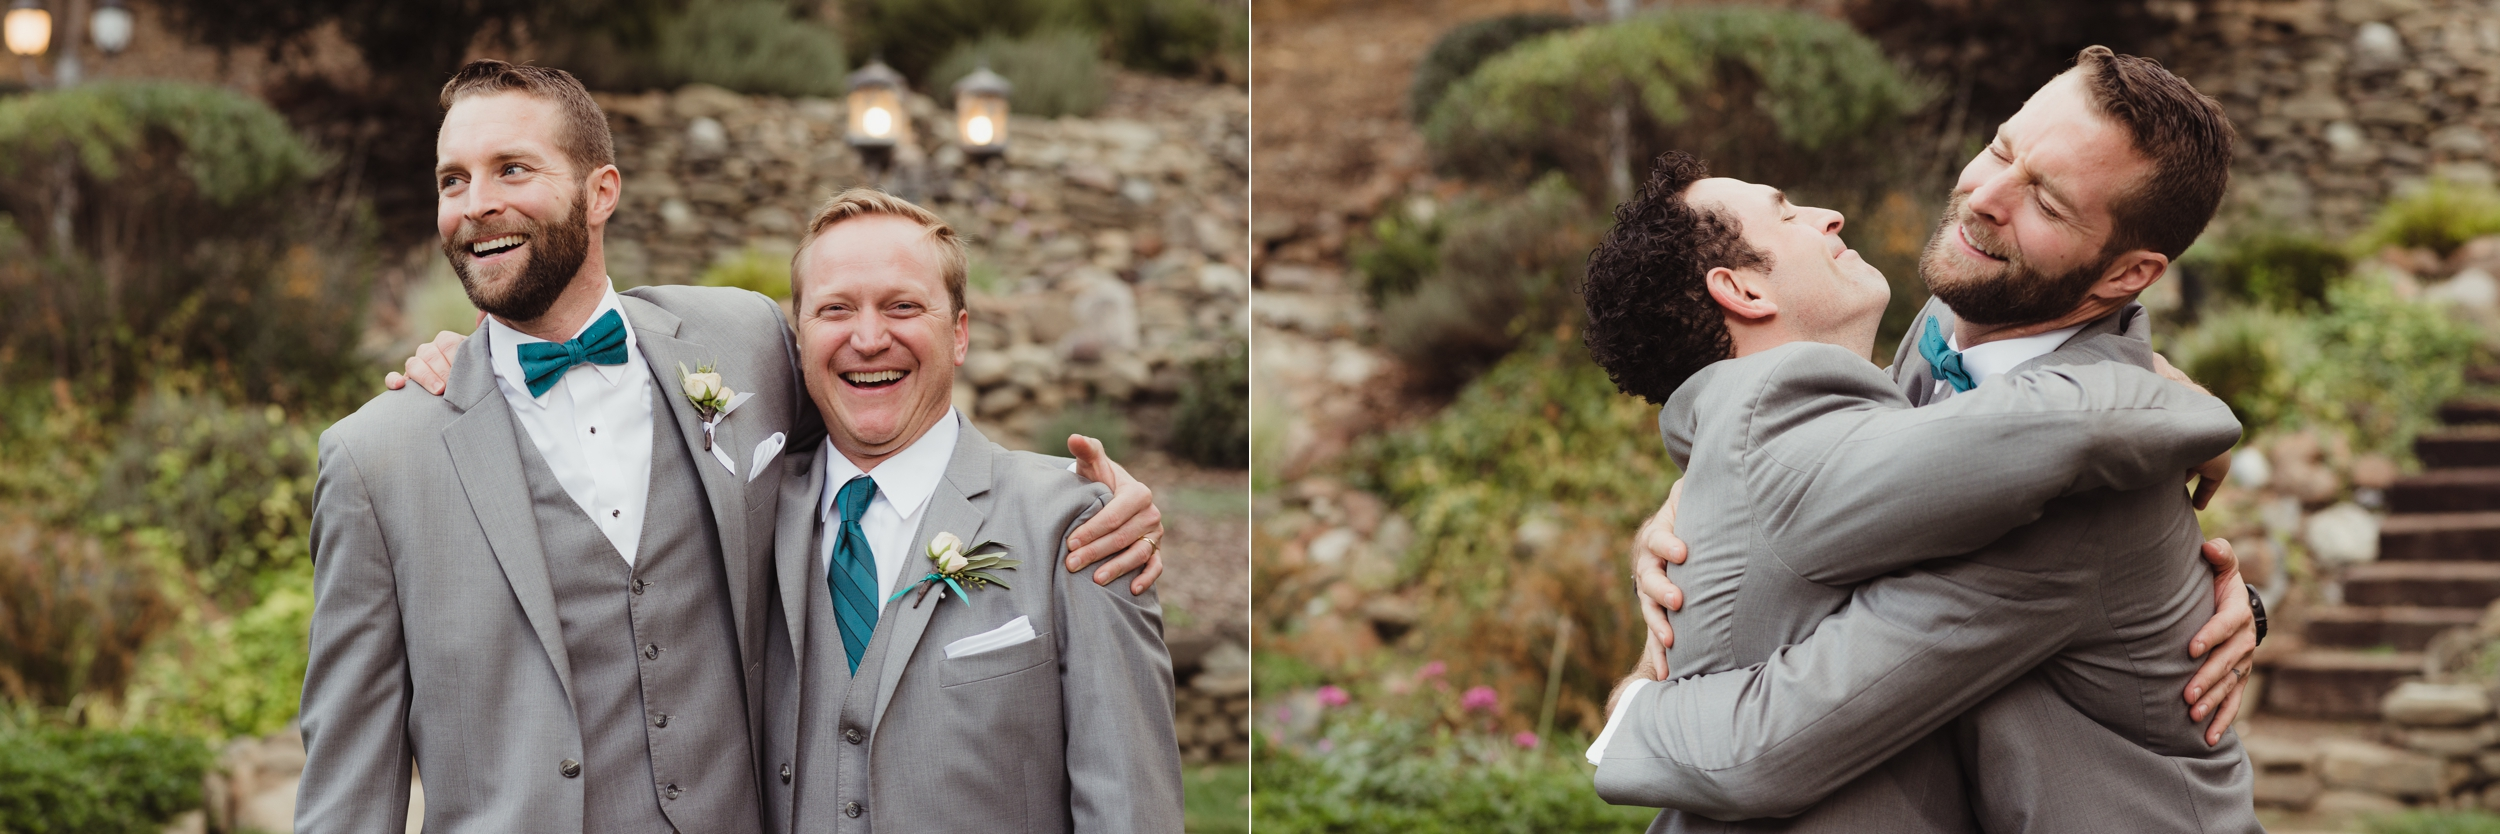 36-sunol-elliston-vineyard-wedding-vivianchen-302_WEB.jpg